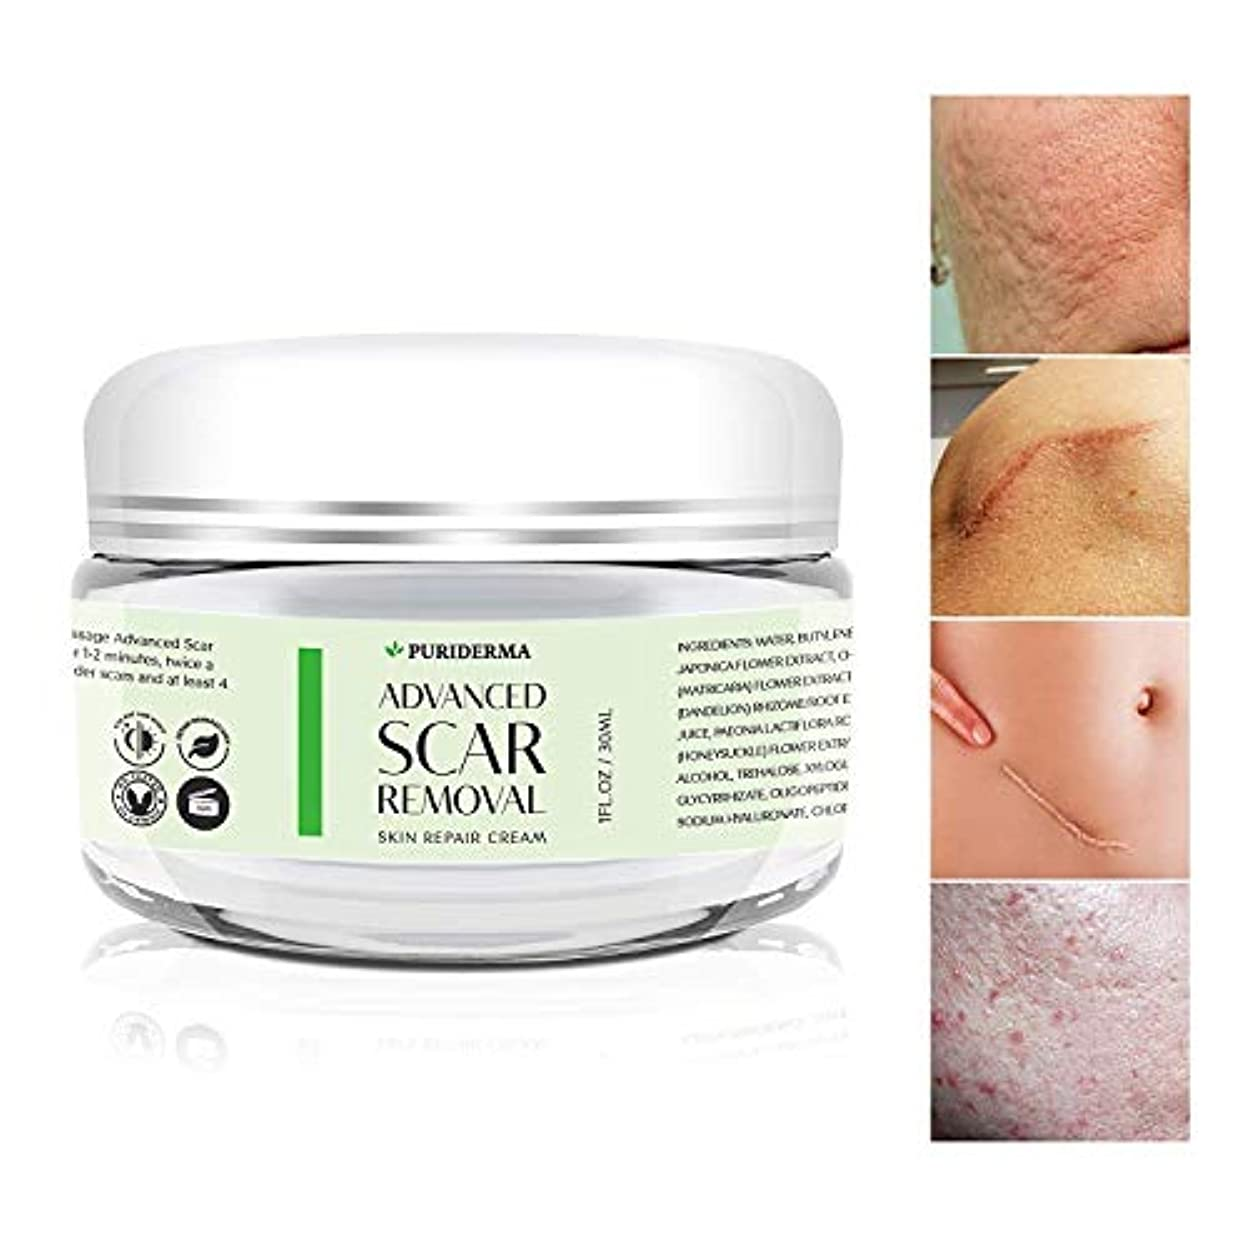 テレビ局アイスクリーム保存Puriderma 社 の Advanced Scar Removal Cream (30 ml) 妊娠線 や 傷跡 修復に Advanced Treatment for Face & Body, Old & New Scars...